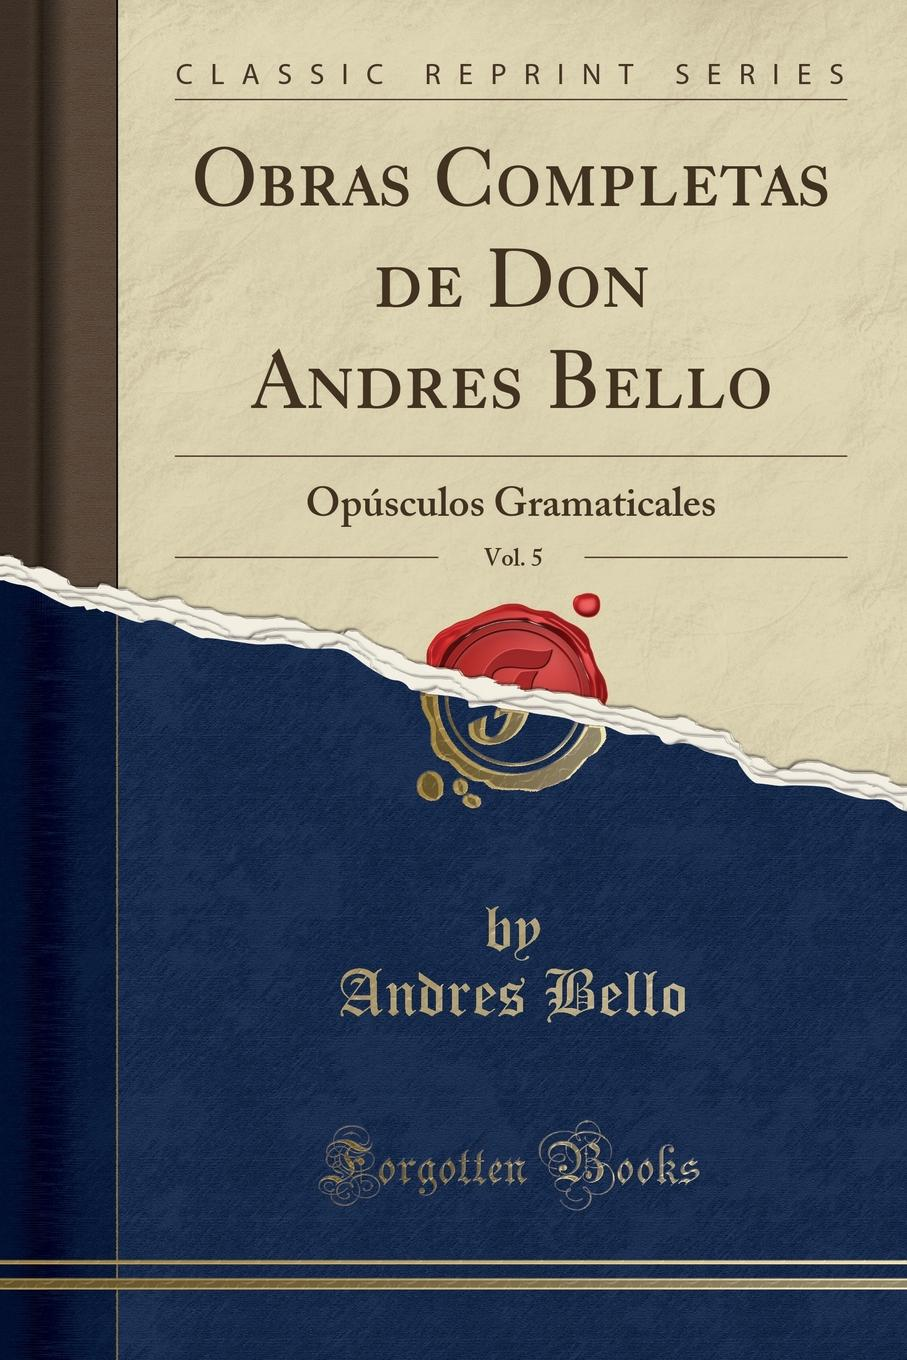 Andres Bello Obras Completas de Don Andres Bello, Vol. 5. Opusculos Gramaticales (Classic Reprint) baby mom changing diaper tote wet bag for stroller mummy maternity travel nappy bag backpack messenger bags bolsa maternidad